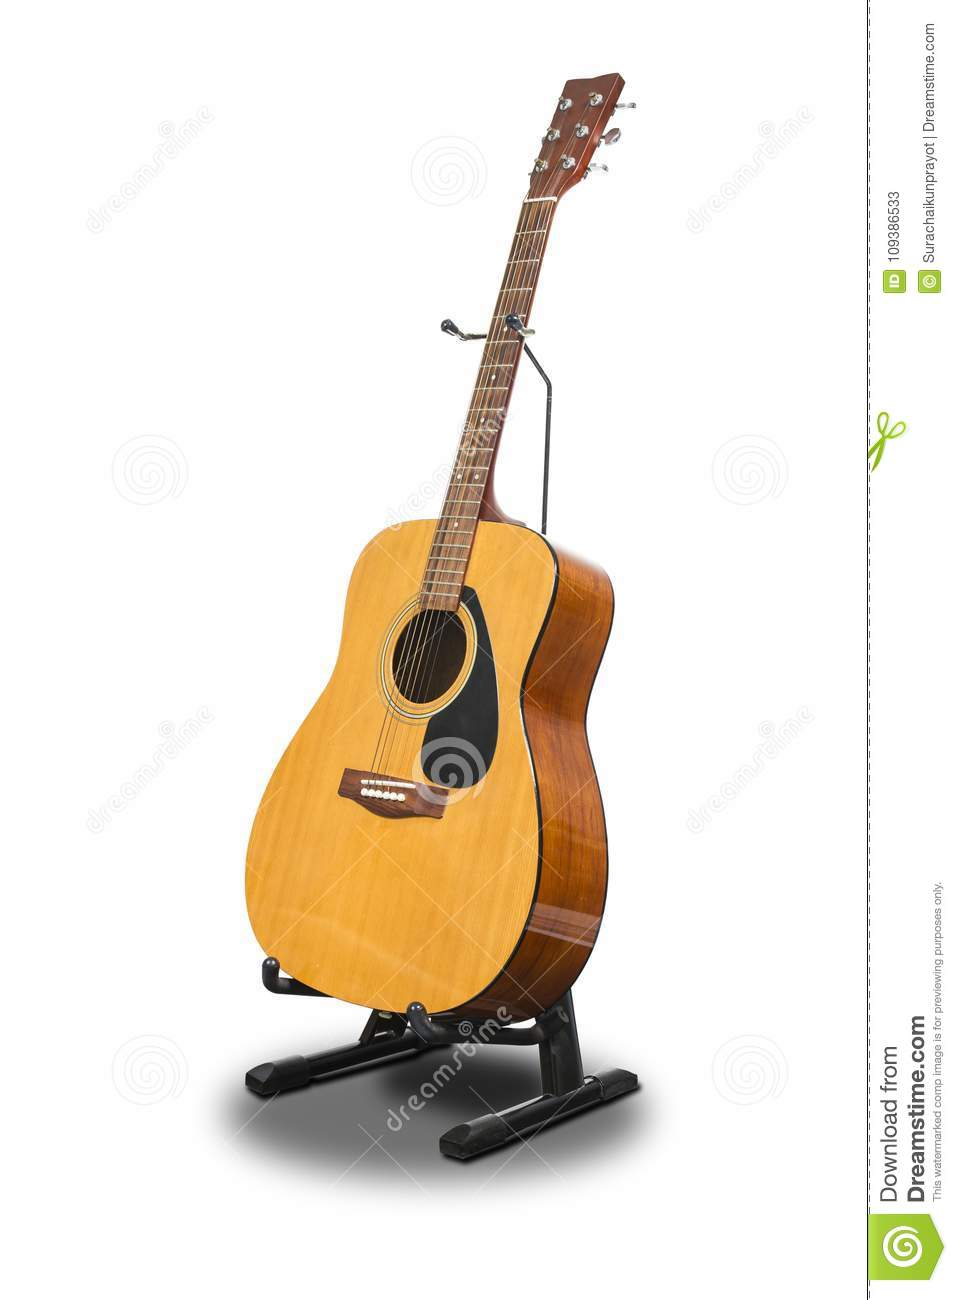 An Acoustic Guitar On A Stand Isolated On White Background Stock